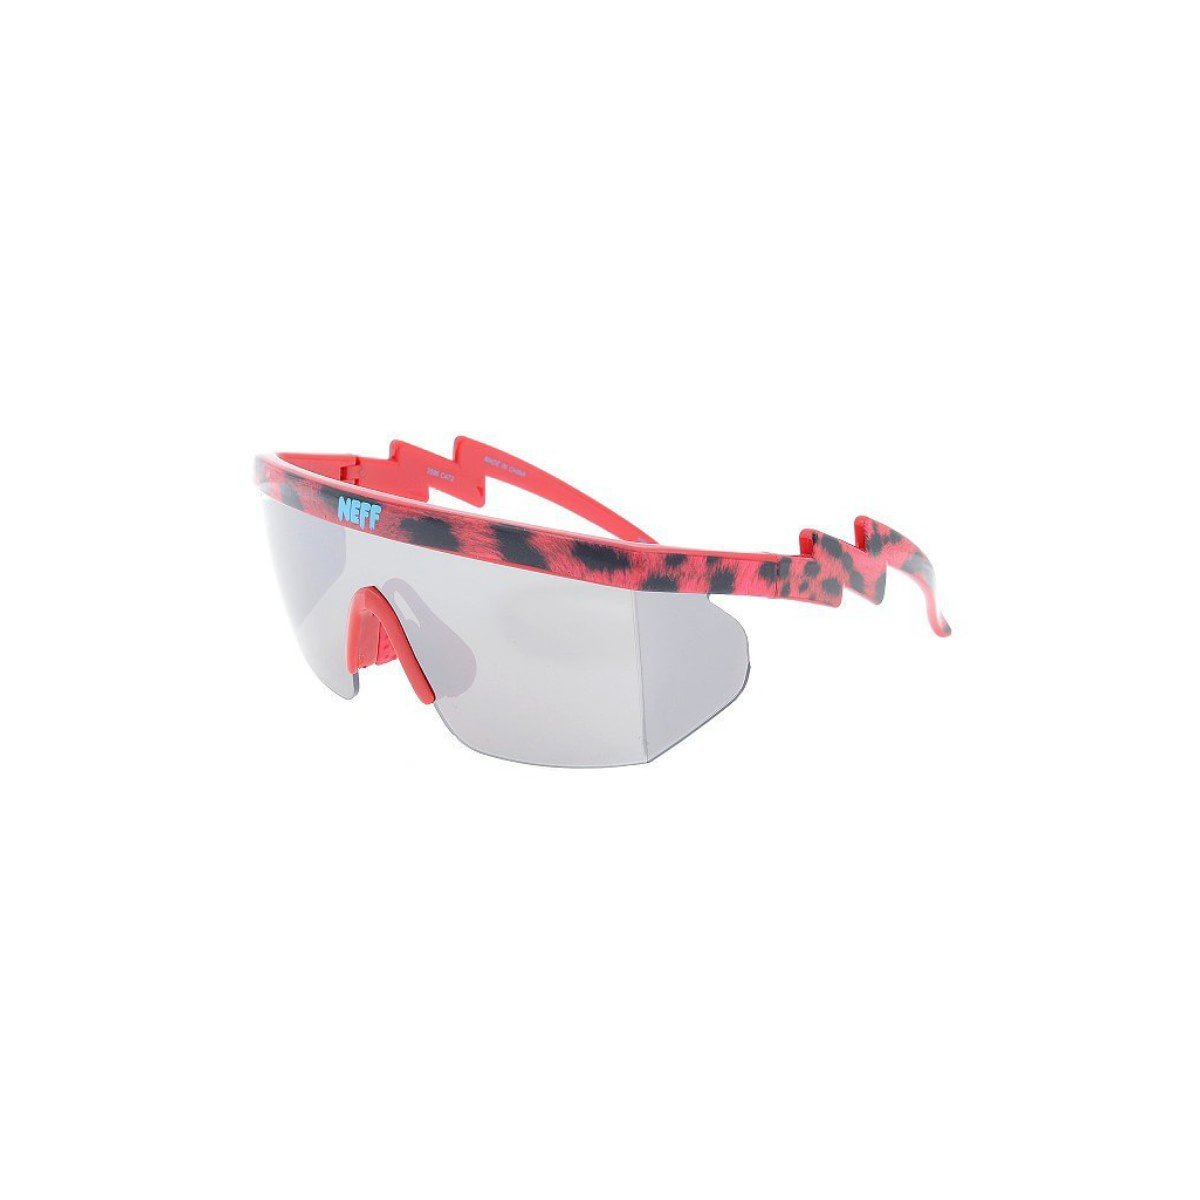 0485dbc88cd Neff Brodie Wrap Around Sport Sunglasses NF0304-Wild Tiger-p Holiday ...